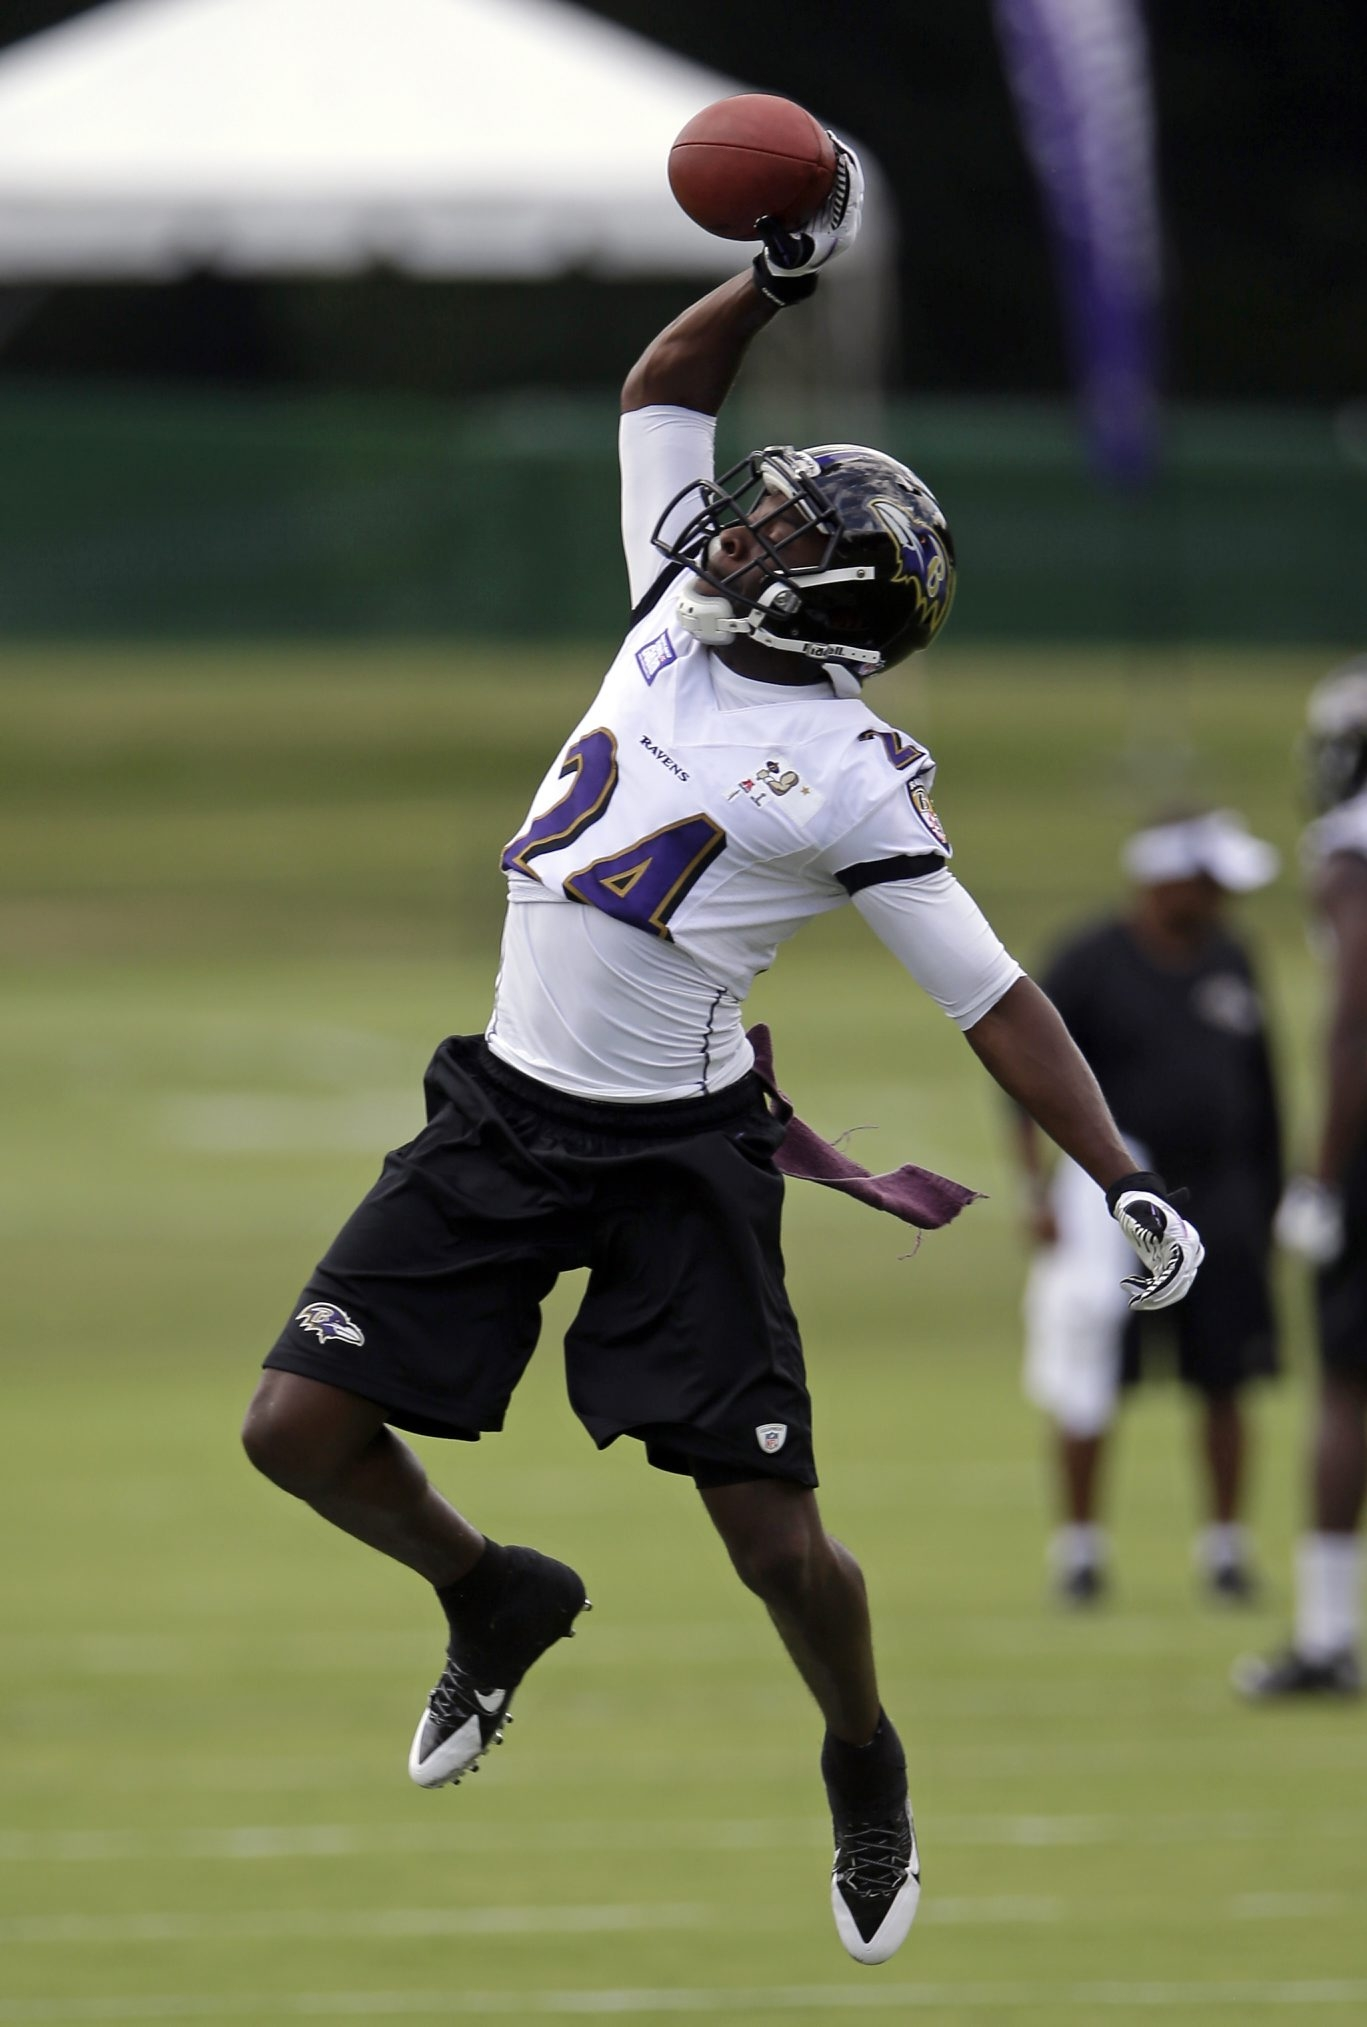 Hometown headliner: Ravens cornerback and Buffalo native Corey Graham is expecting a large turnout by friends and family when he plays against the Buffalo Bills on Sunday at Ralph Wilson Stadium.